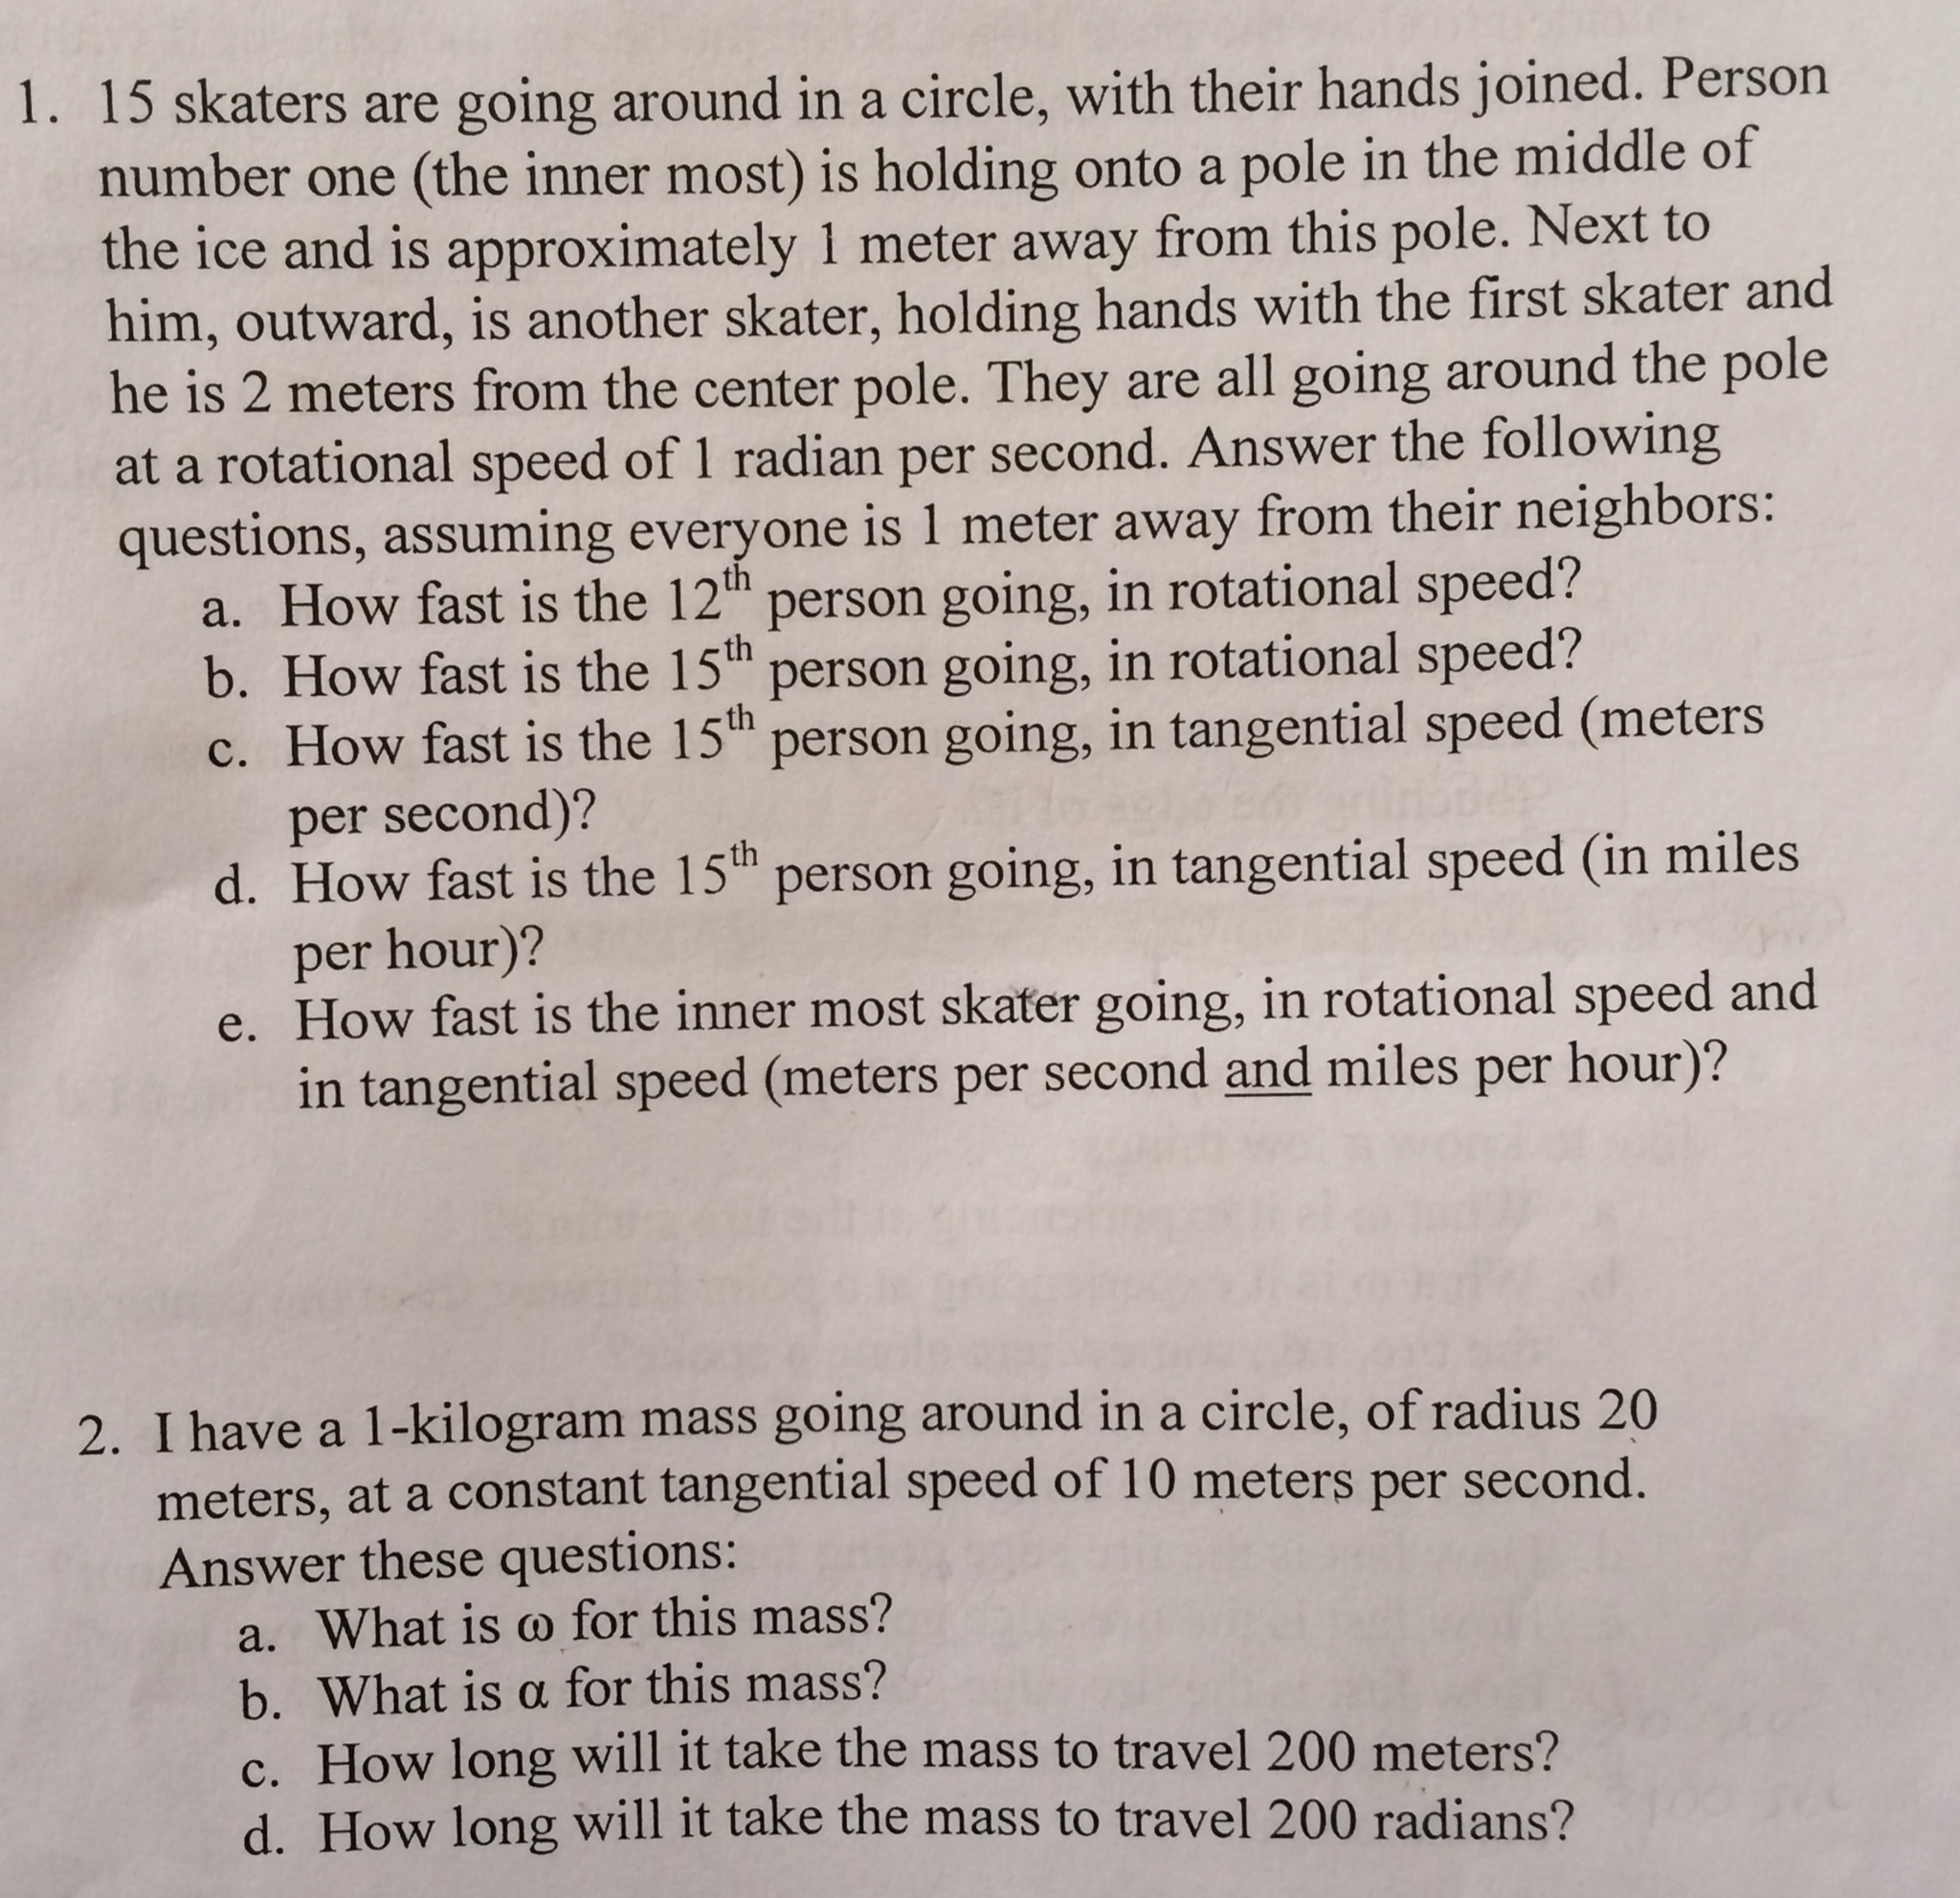 Algebra 1 H help with Problems! 10 PTS BEST ANSWERS!?